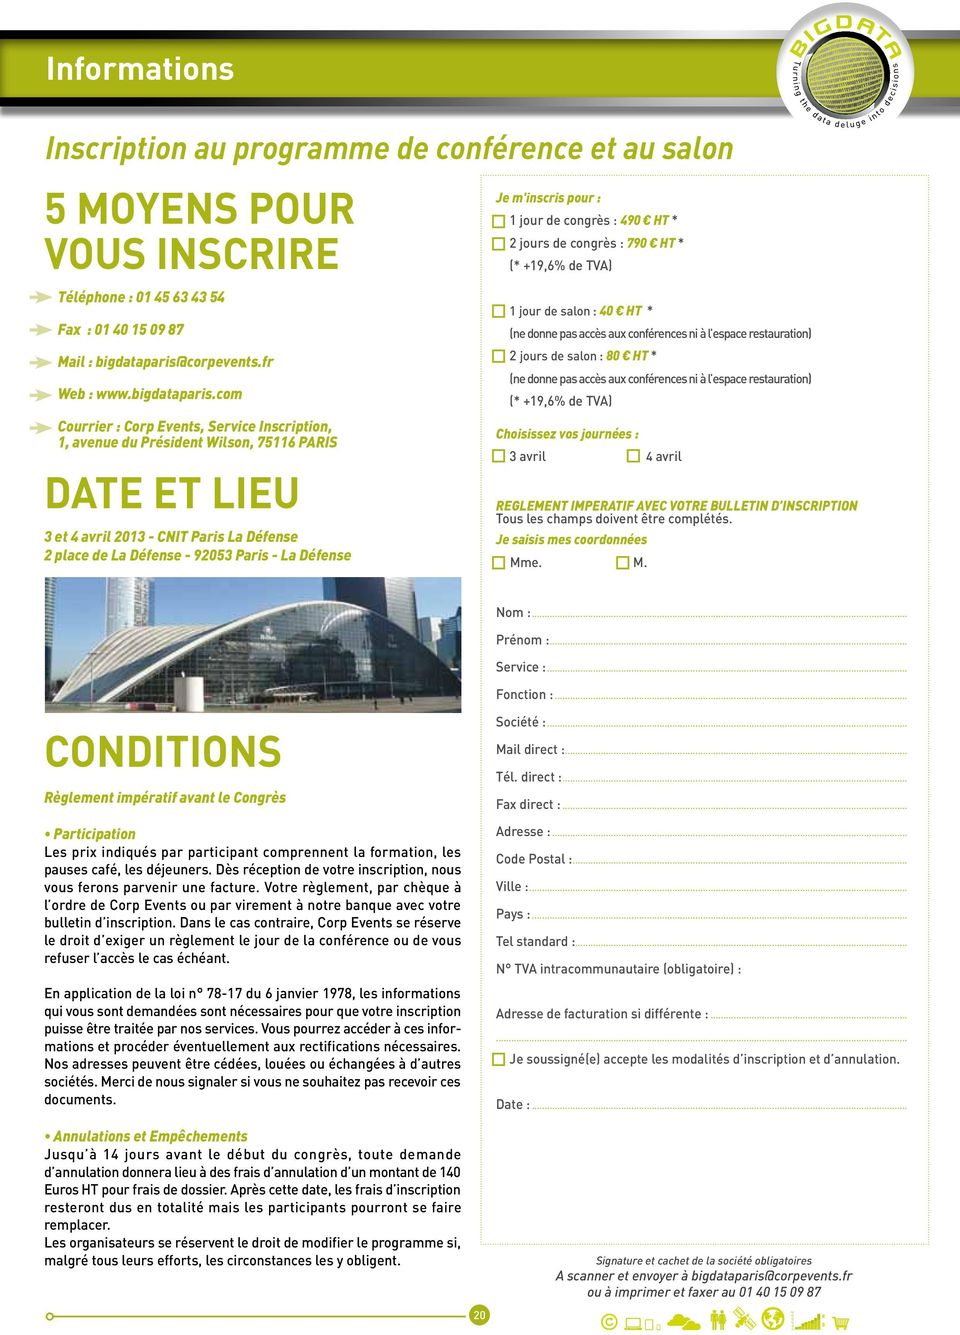 com Courrier : Corp Events, Service Inscription, 1, avenue du Président Wilson, 75116 PARIS DATE ET LIEU 3 et 4 avril 2013 - CNIT Paris La Défense 2 place de La Défense - 92053 Paris - La Défense Je